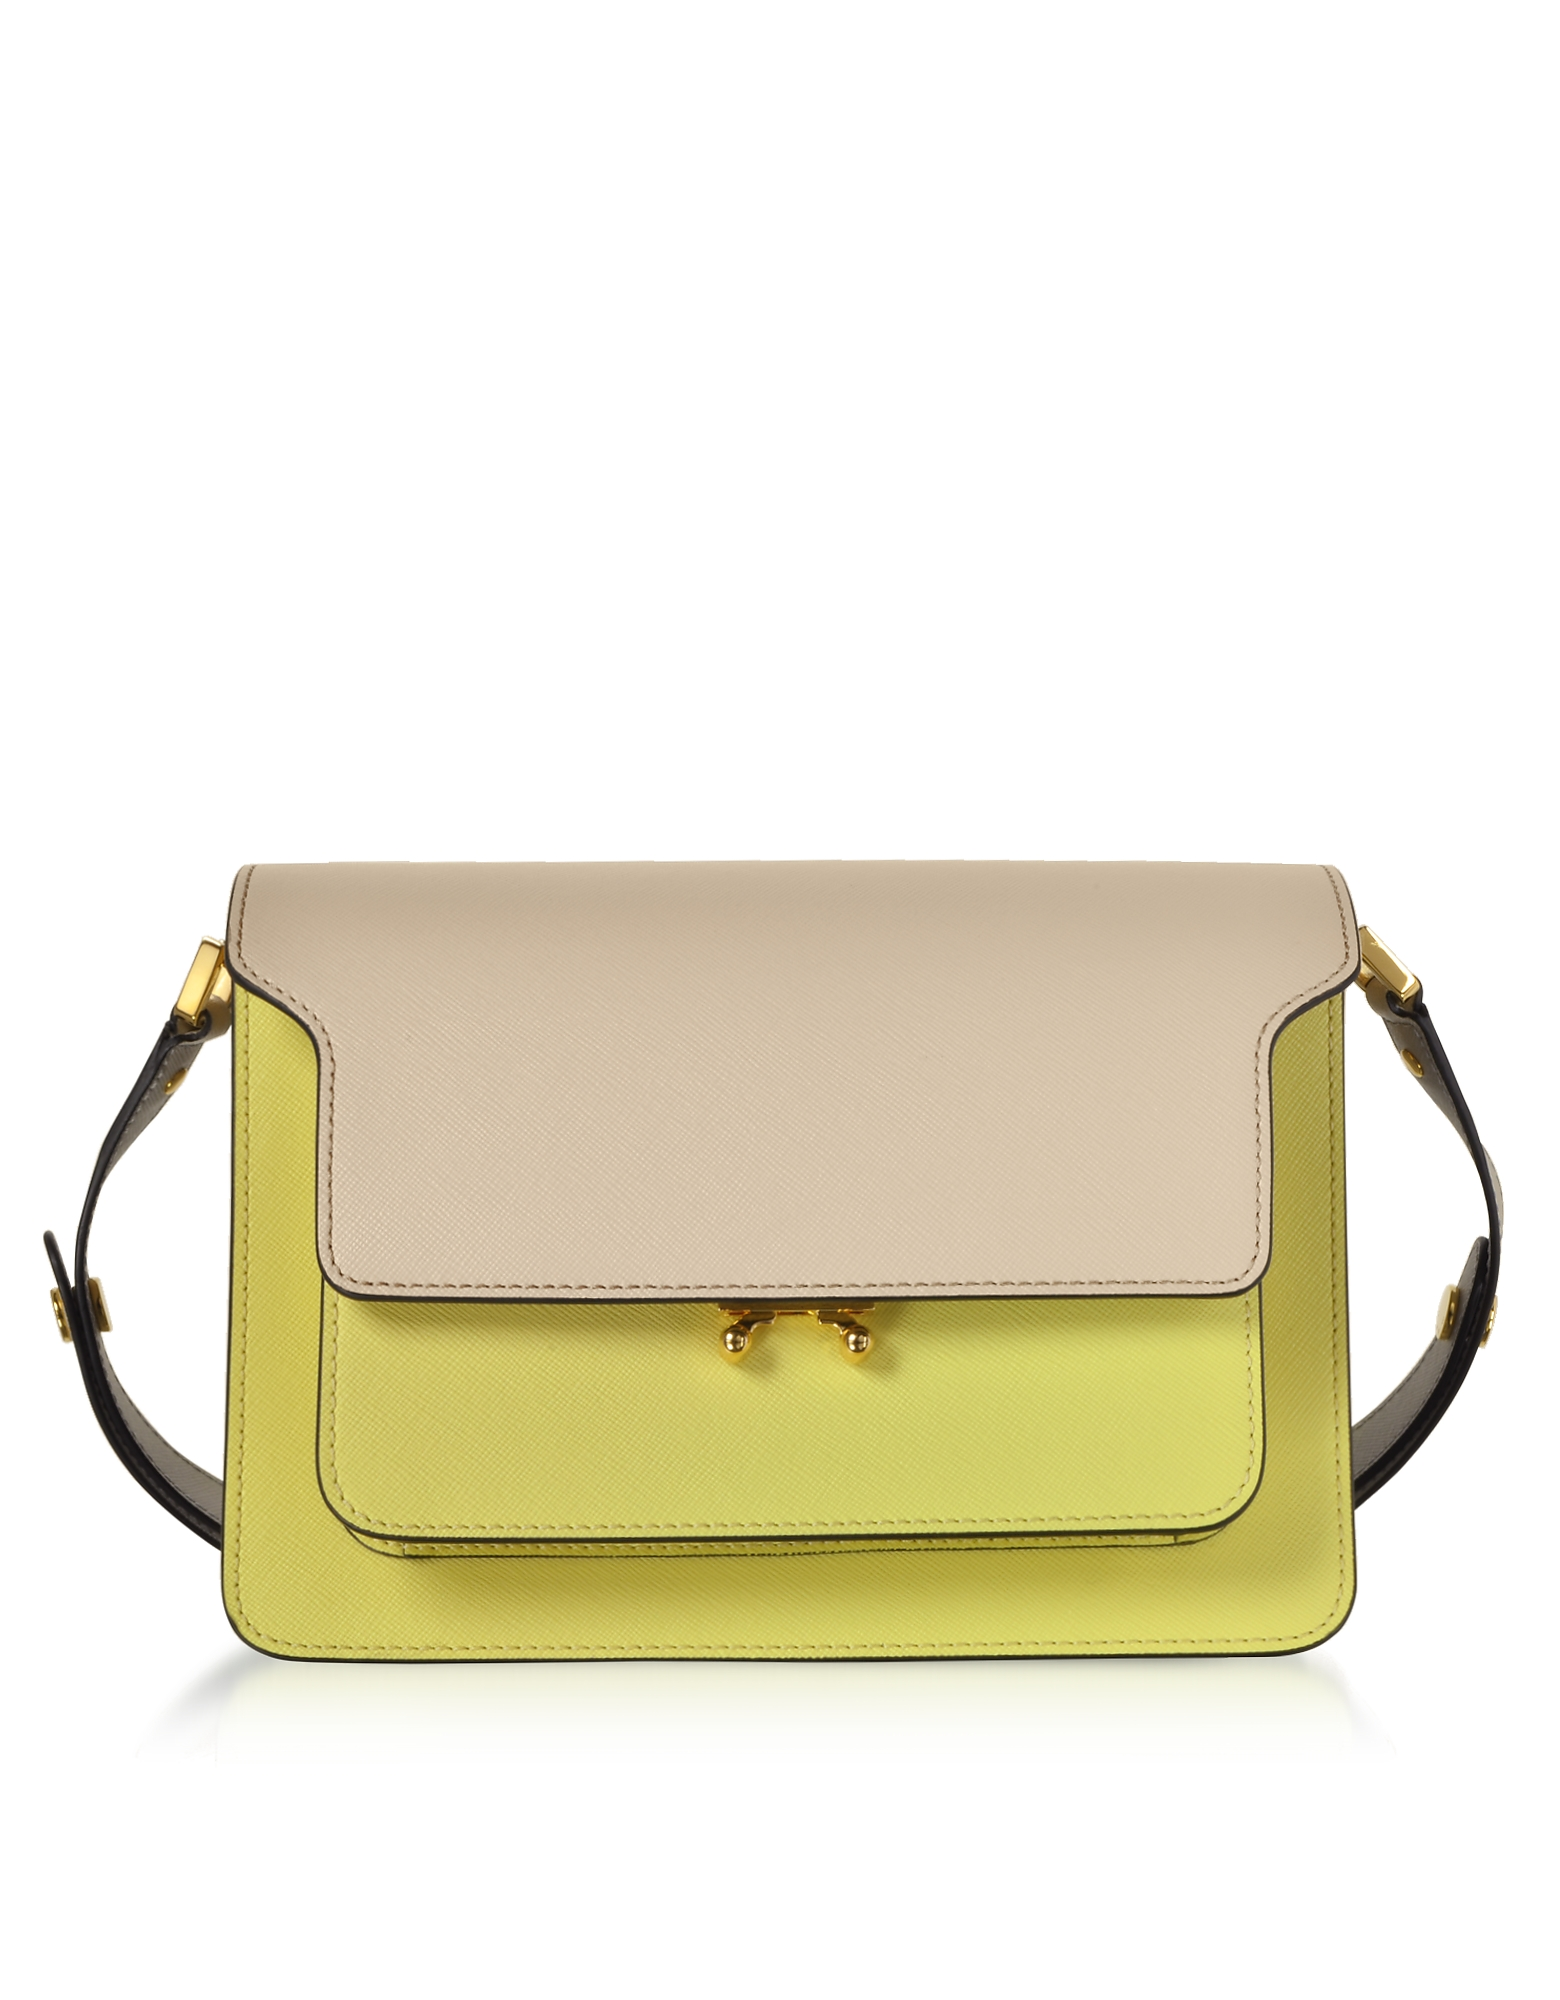 Marni Handbags, Color Block Saffiano Leather Trunk Bag